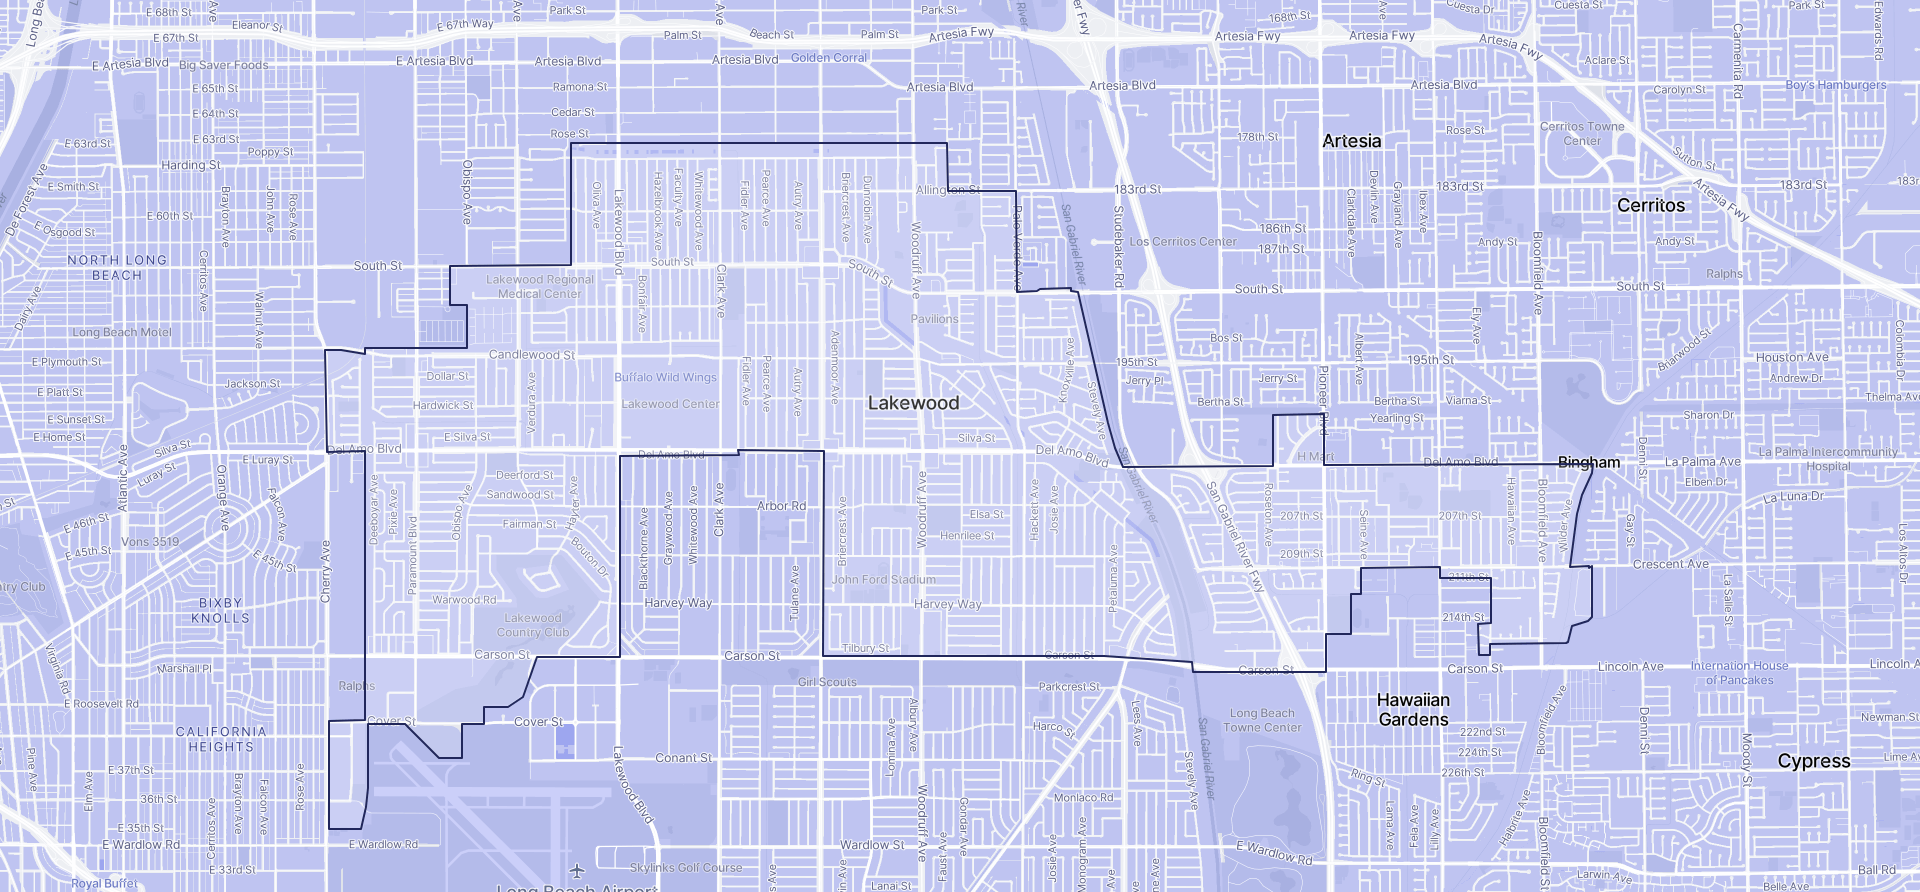 Image of Lakewood boundaries on a map.